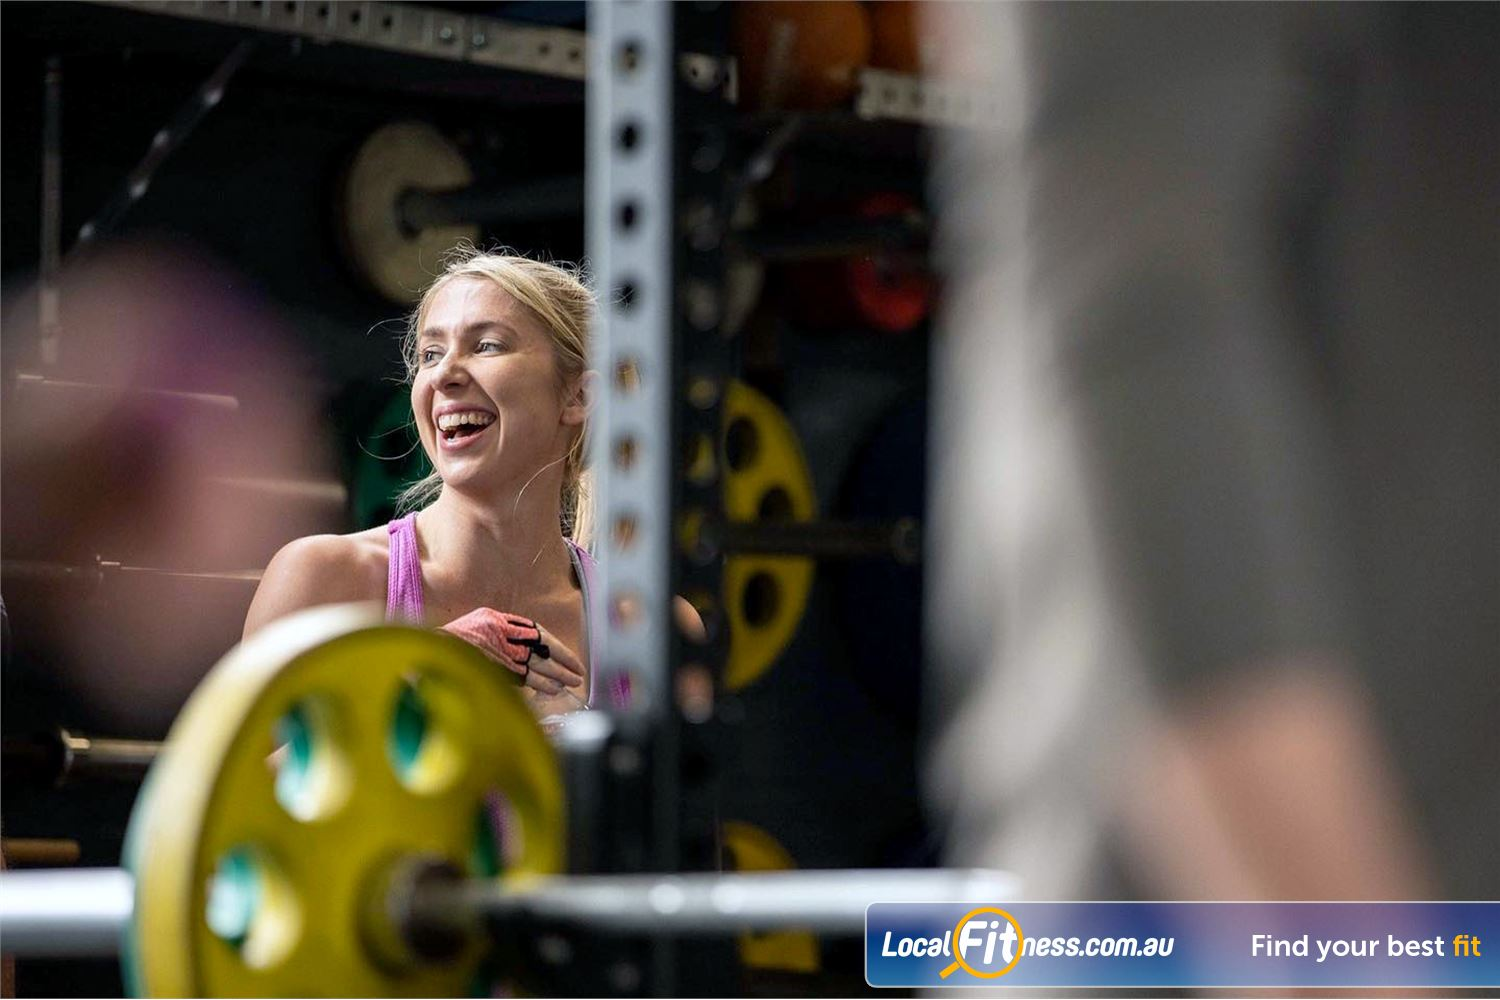 KettleFit Ascot Vale Near Parkville Our Ascot Vale gym classes are fun, high energy and challenging.